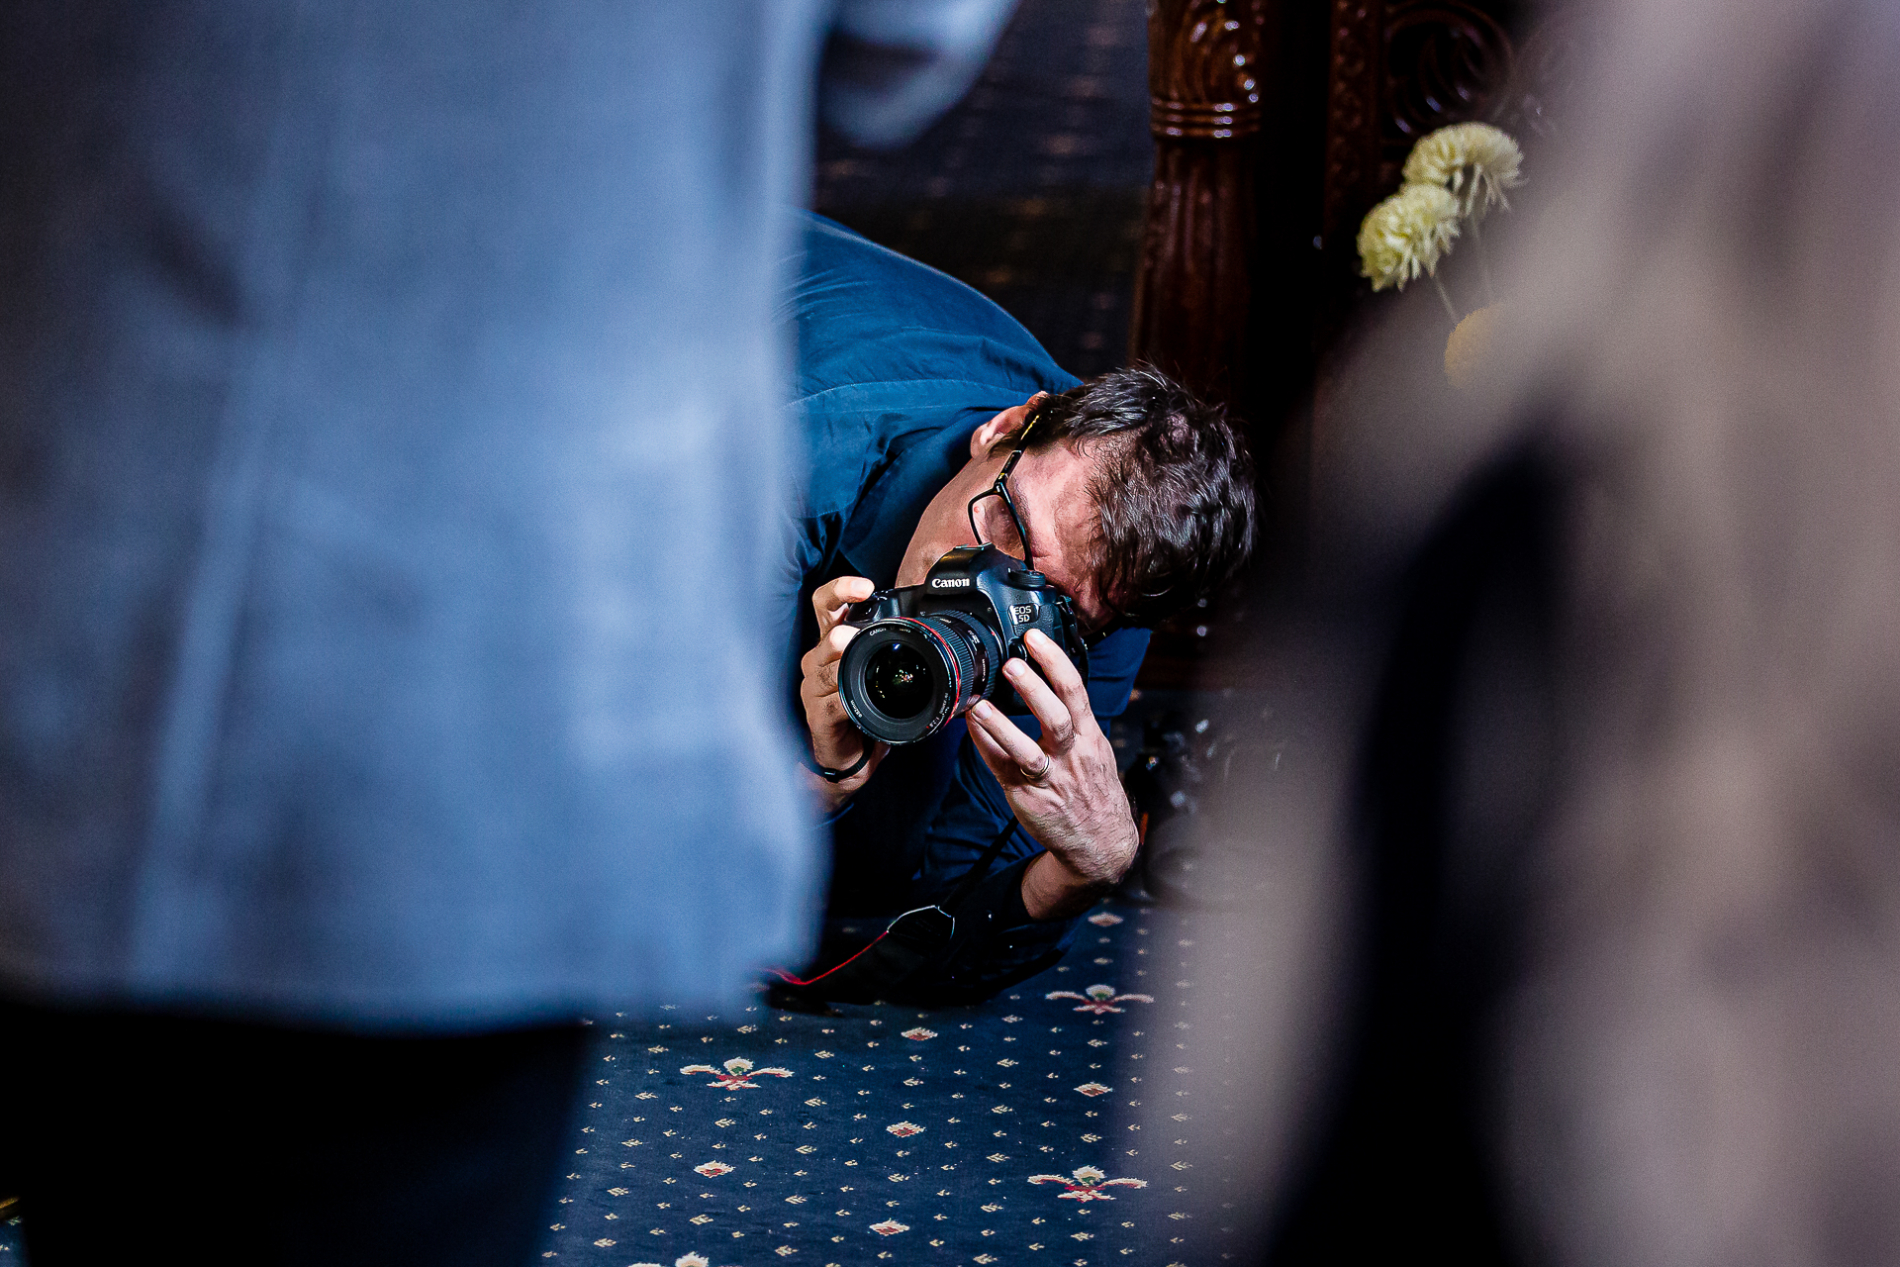 Images of Mihai Zaharia taking pictures at a Romania Bucharest wedding